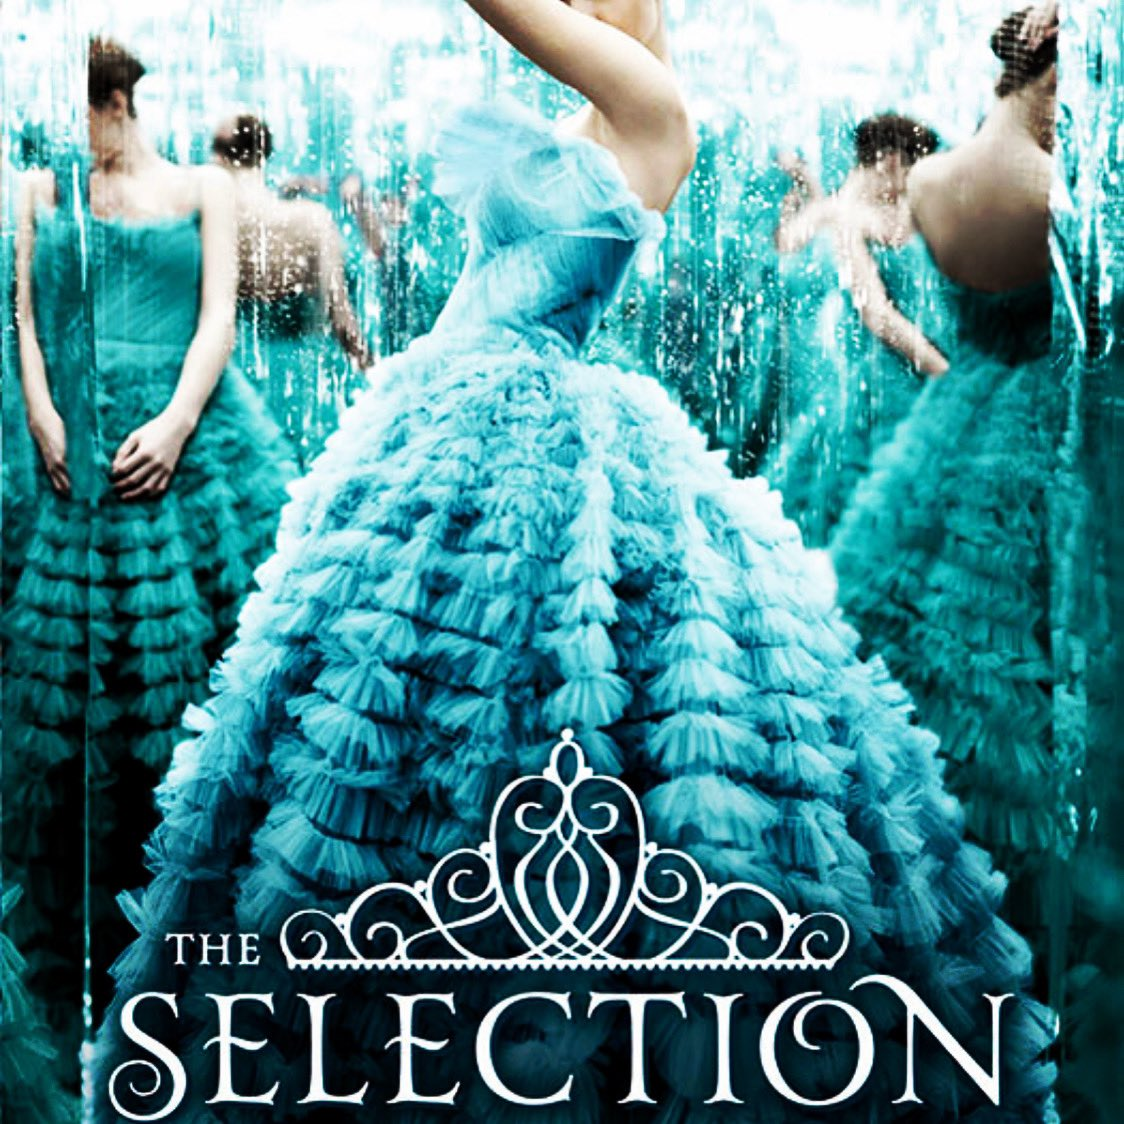 Have you read this series? I've just finished my third time through and will probably read it again this year. The author is Kiera Cass. #yabooks #reading #theselectionseries #kieracass #kindle #amazonprimereading #tooaccurateforcomfortpic.twitter.com/sKi4iVWCjt